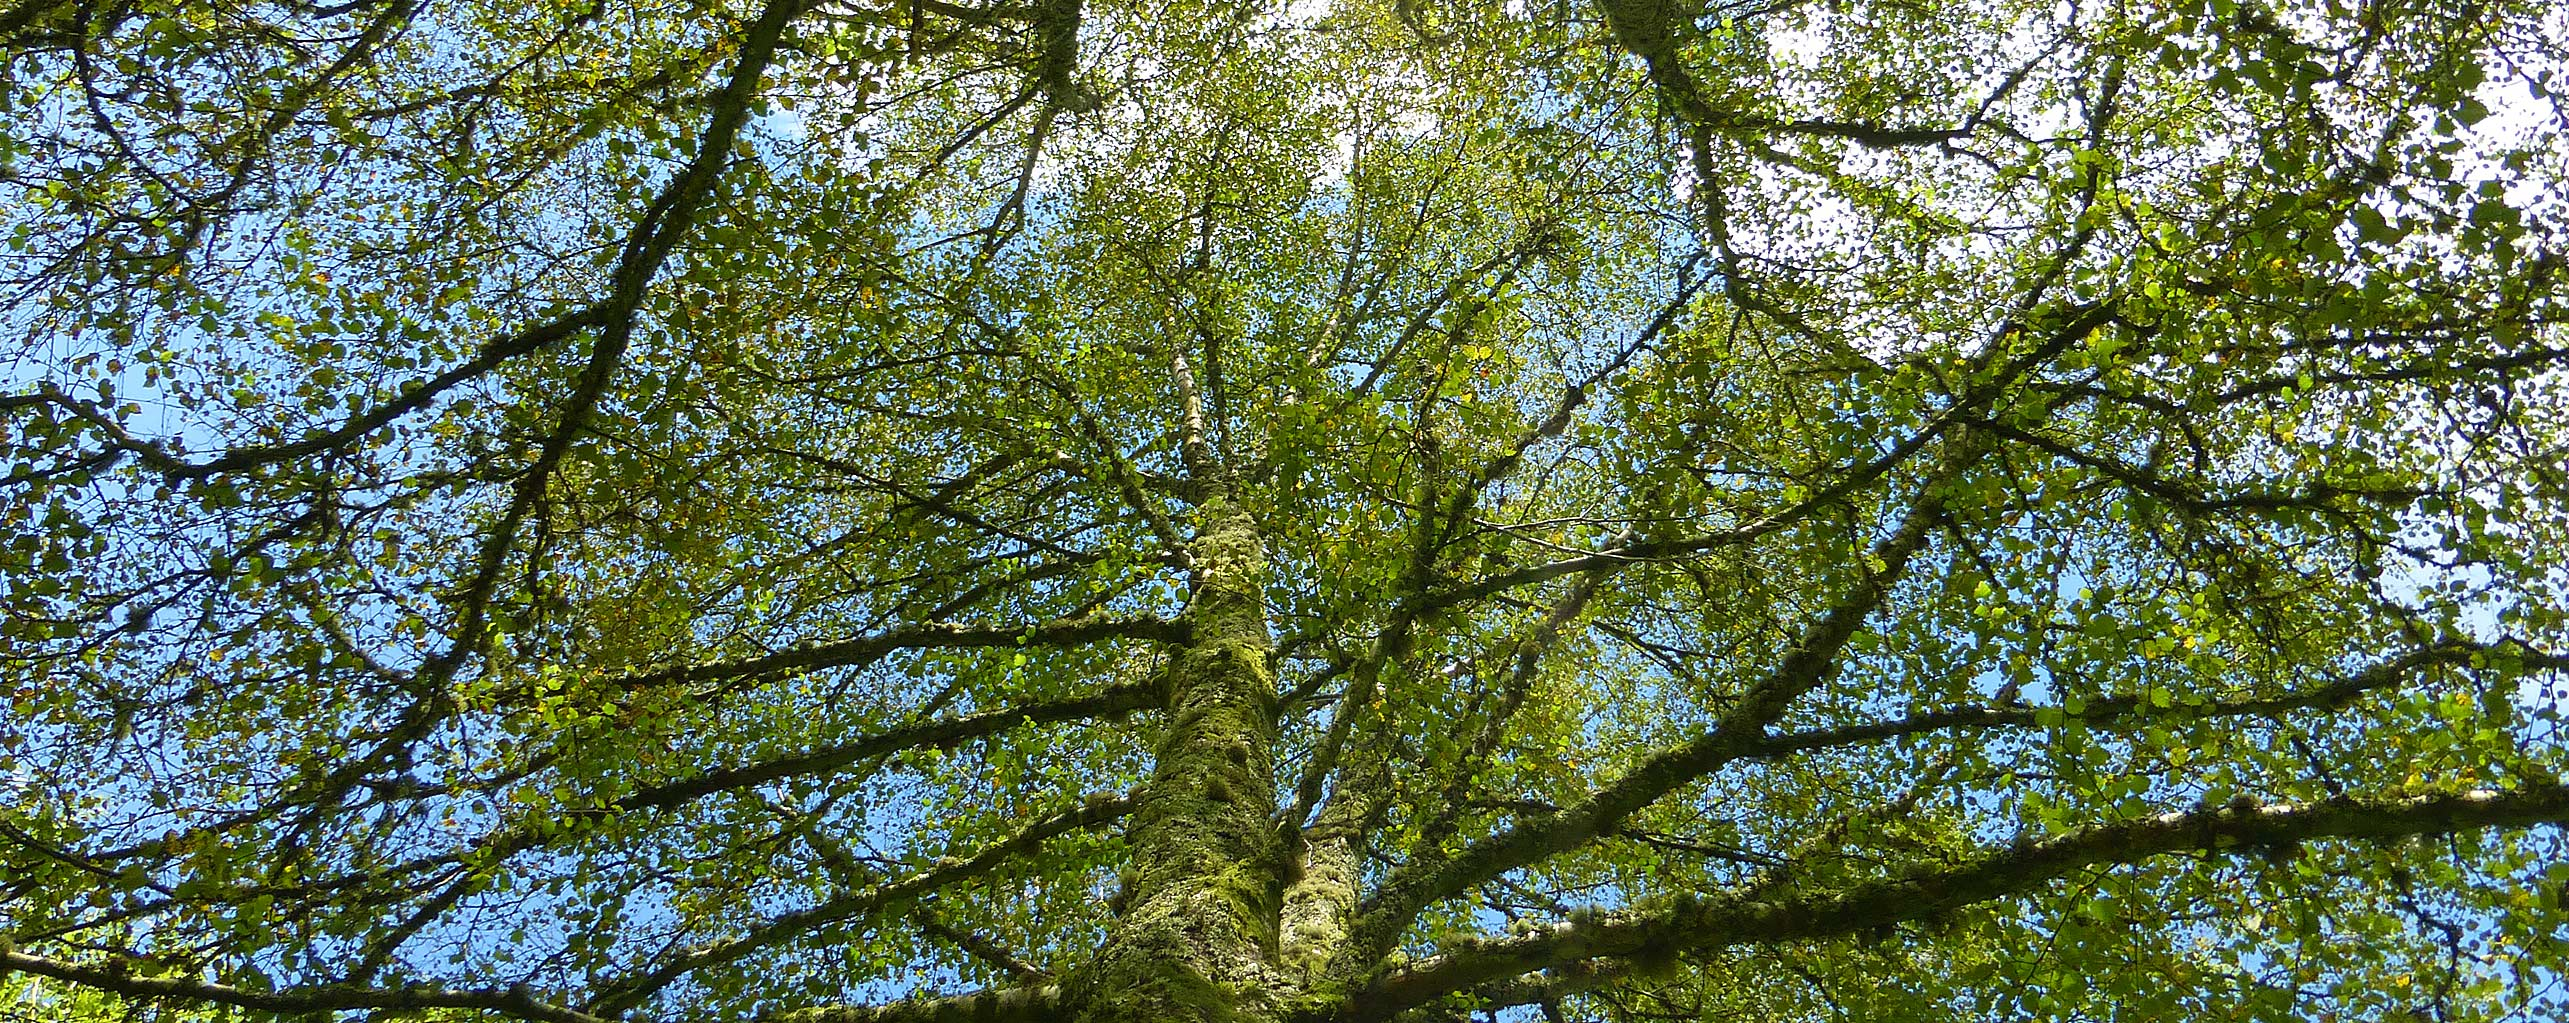 Looking up throught the trees at Sychpant Woods